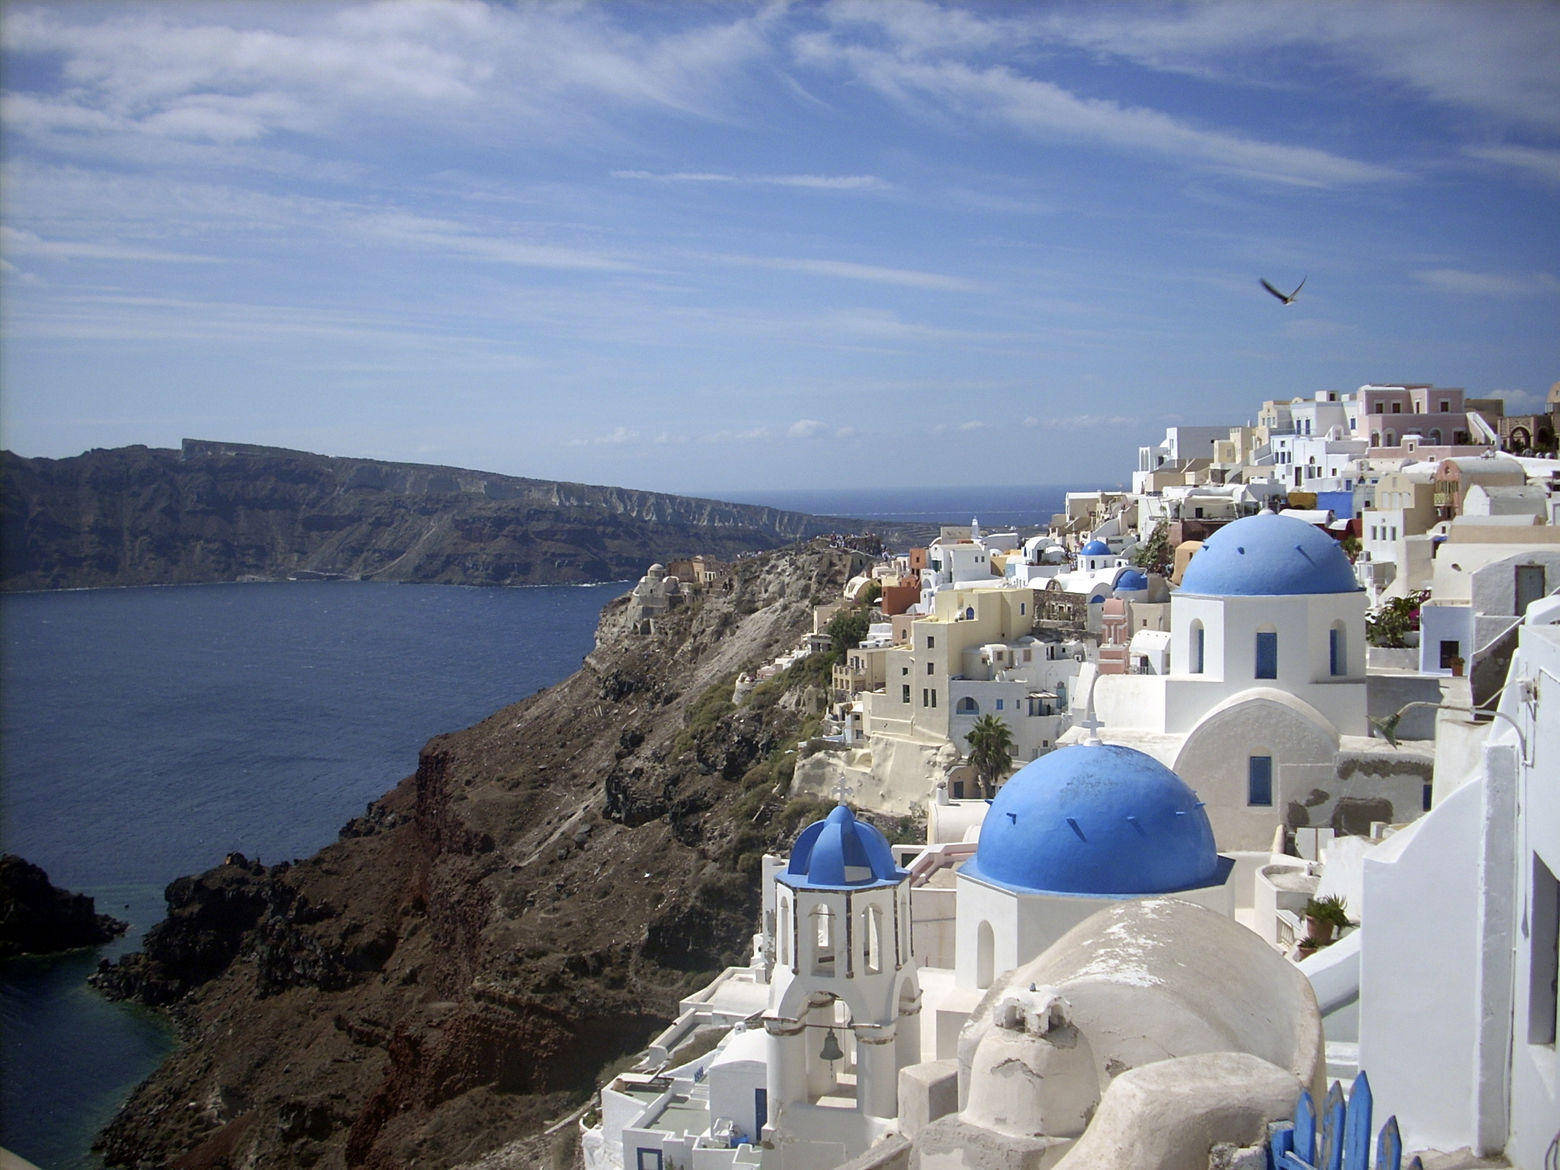 This Sept. 21, 2009 photo shows a view of Oia village on the island of Santorini, Greece. The Greek island of Santorini offers seaside tavernas, cliffside paths, black volcanic rocks and of course, sunshine and the Aegean.      (AP Photo/Michael Virtanen)